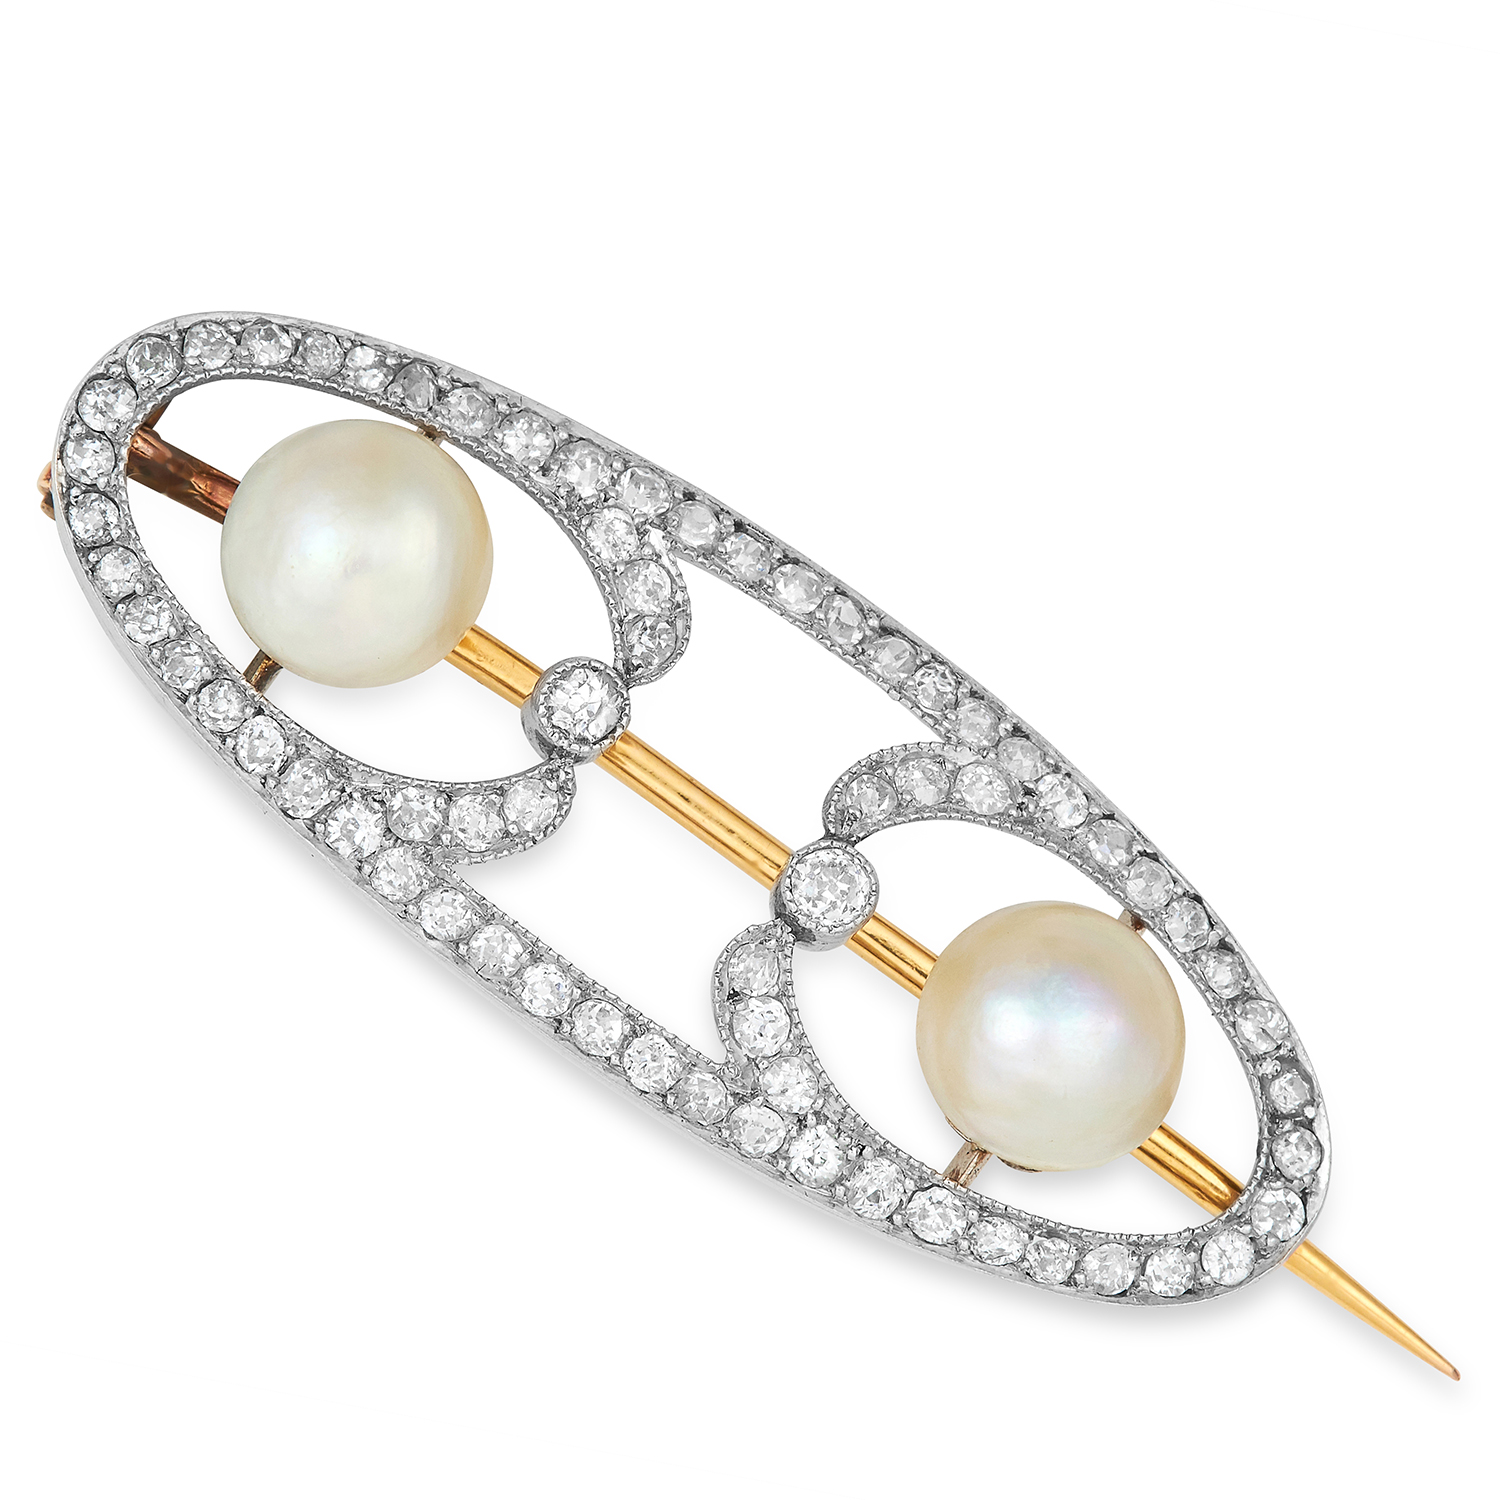 Los 19 - ART NOUVEAU DIAMOND AND PEARL BROOCH set with old cut diamonds and two pearls, possibly natural,